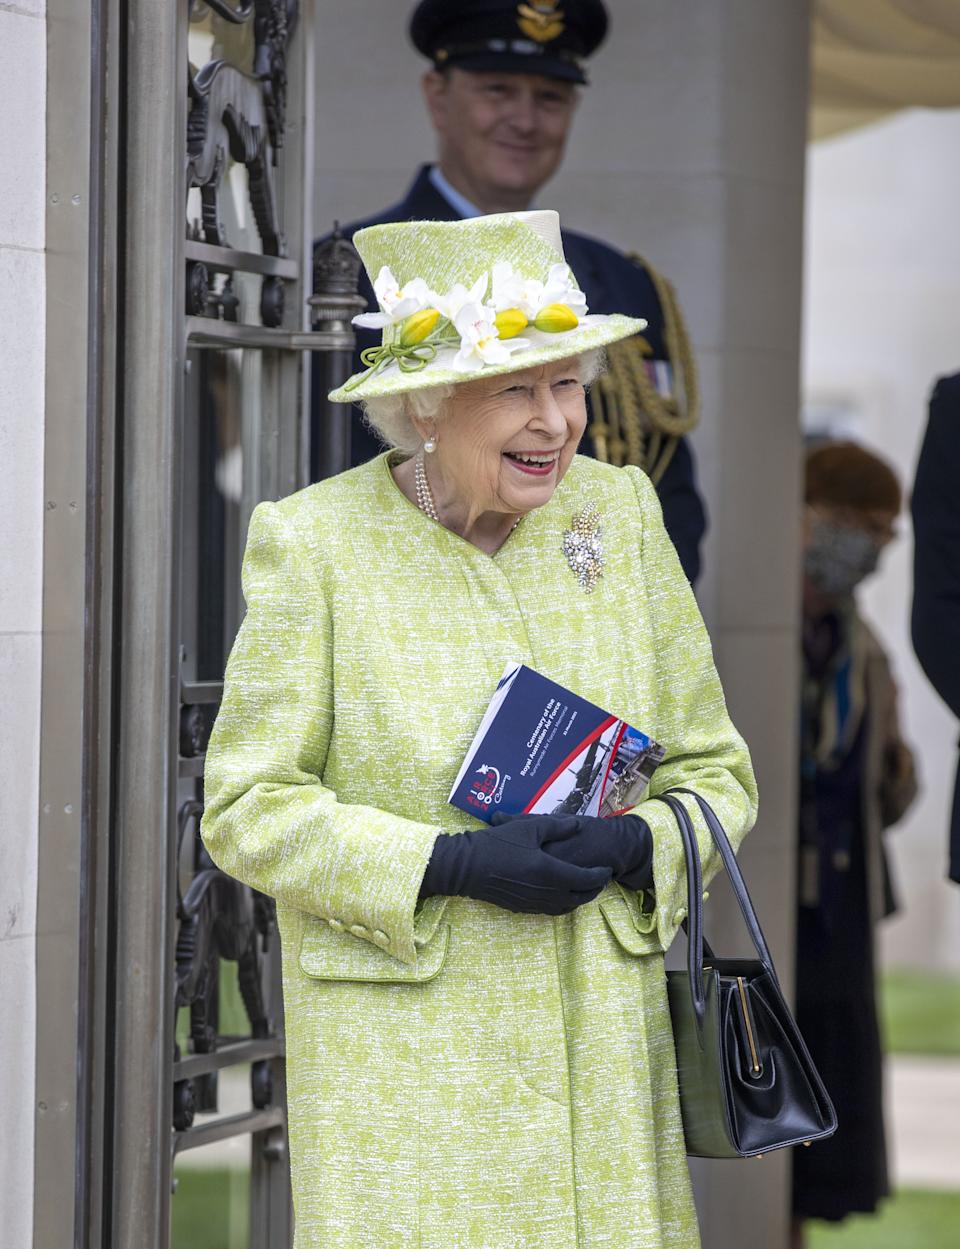 The Queen wore black gloves but she didn't wear a mask during the outdoor visit. (PA Images)